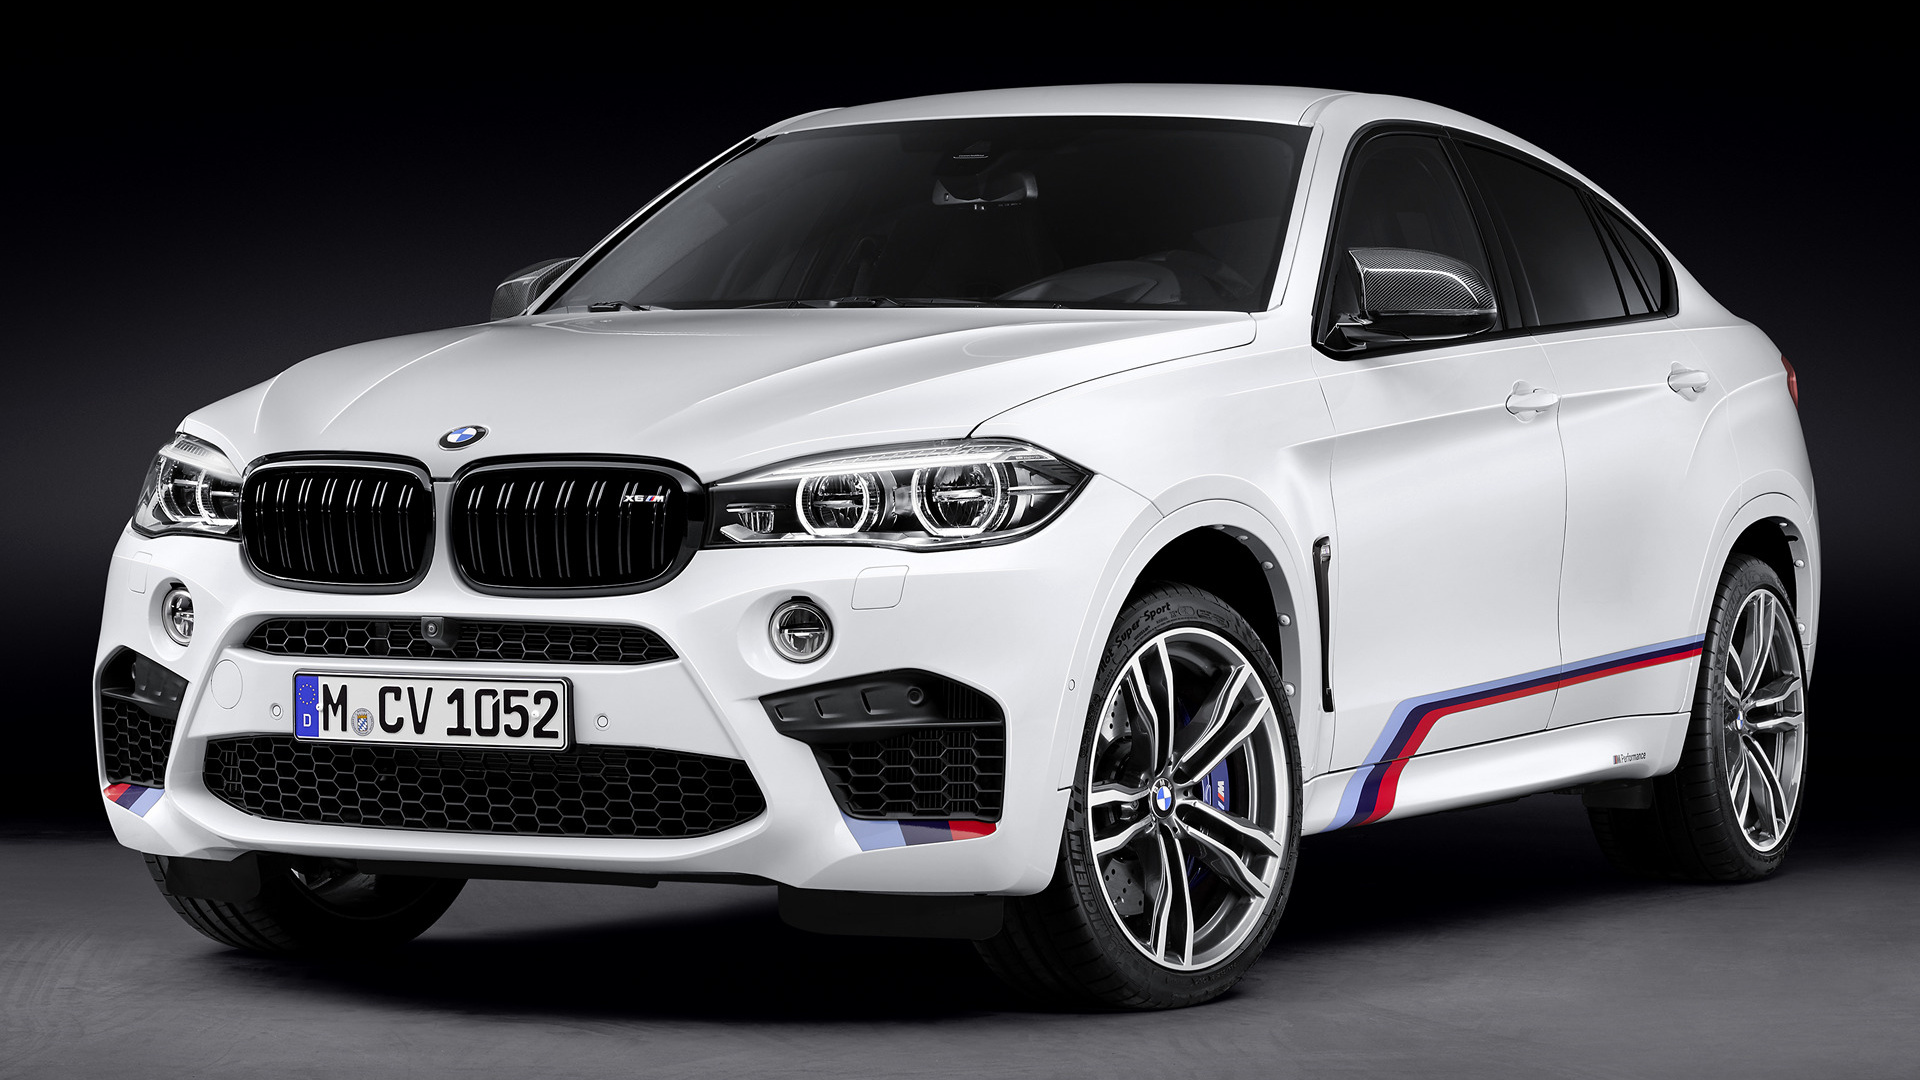 Bmw X6 M With M Performance Parts 2015 Wallpapers And Hd Images